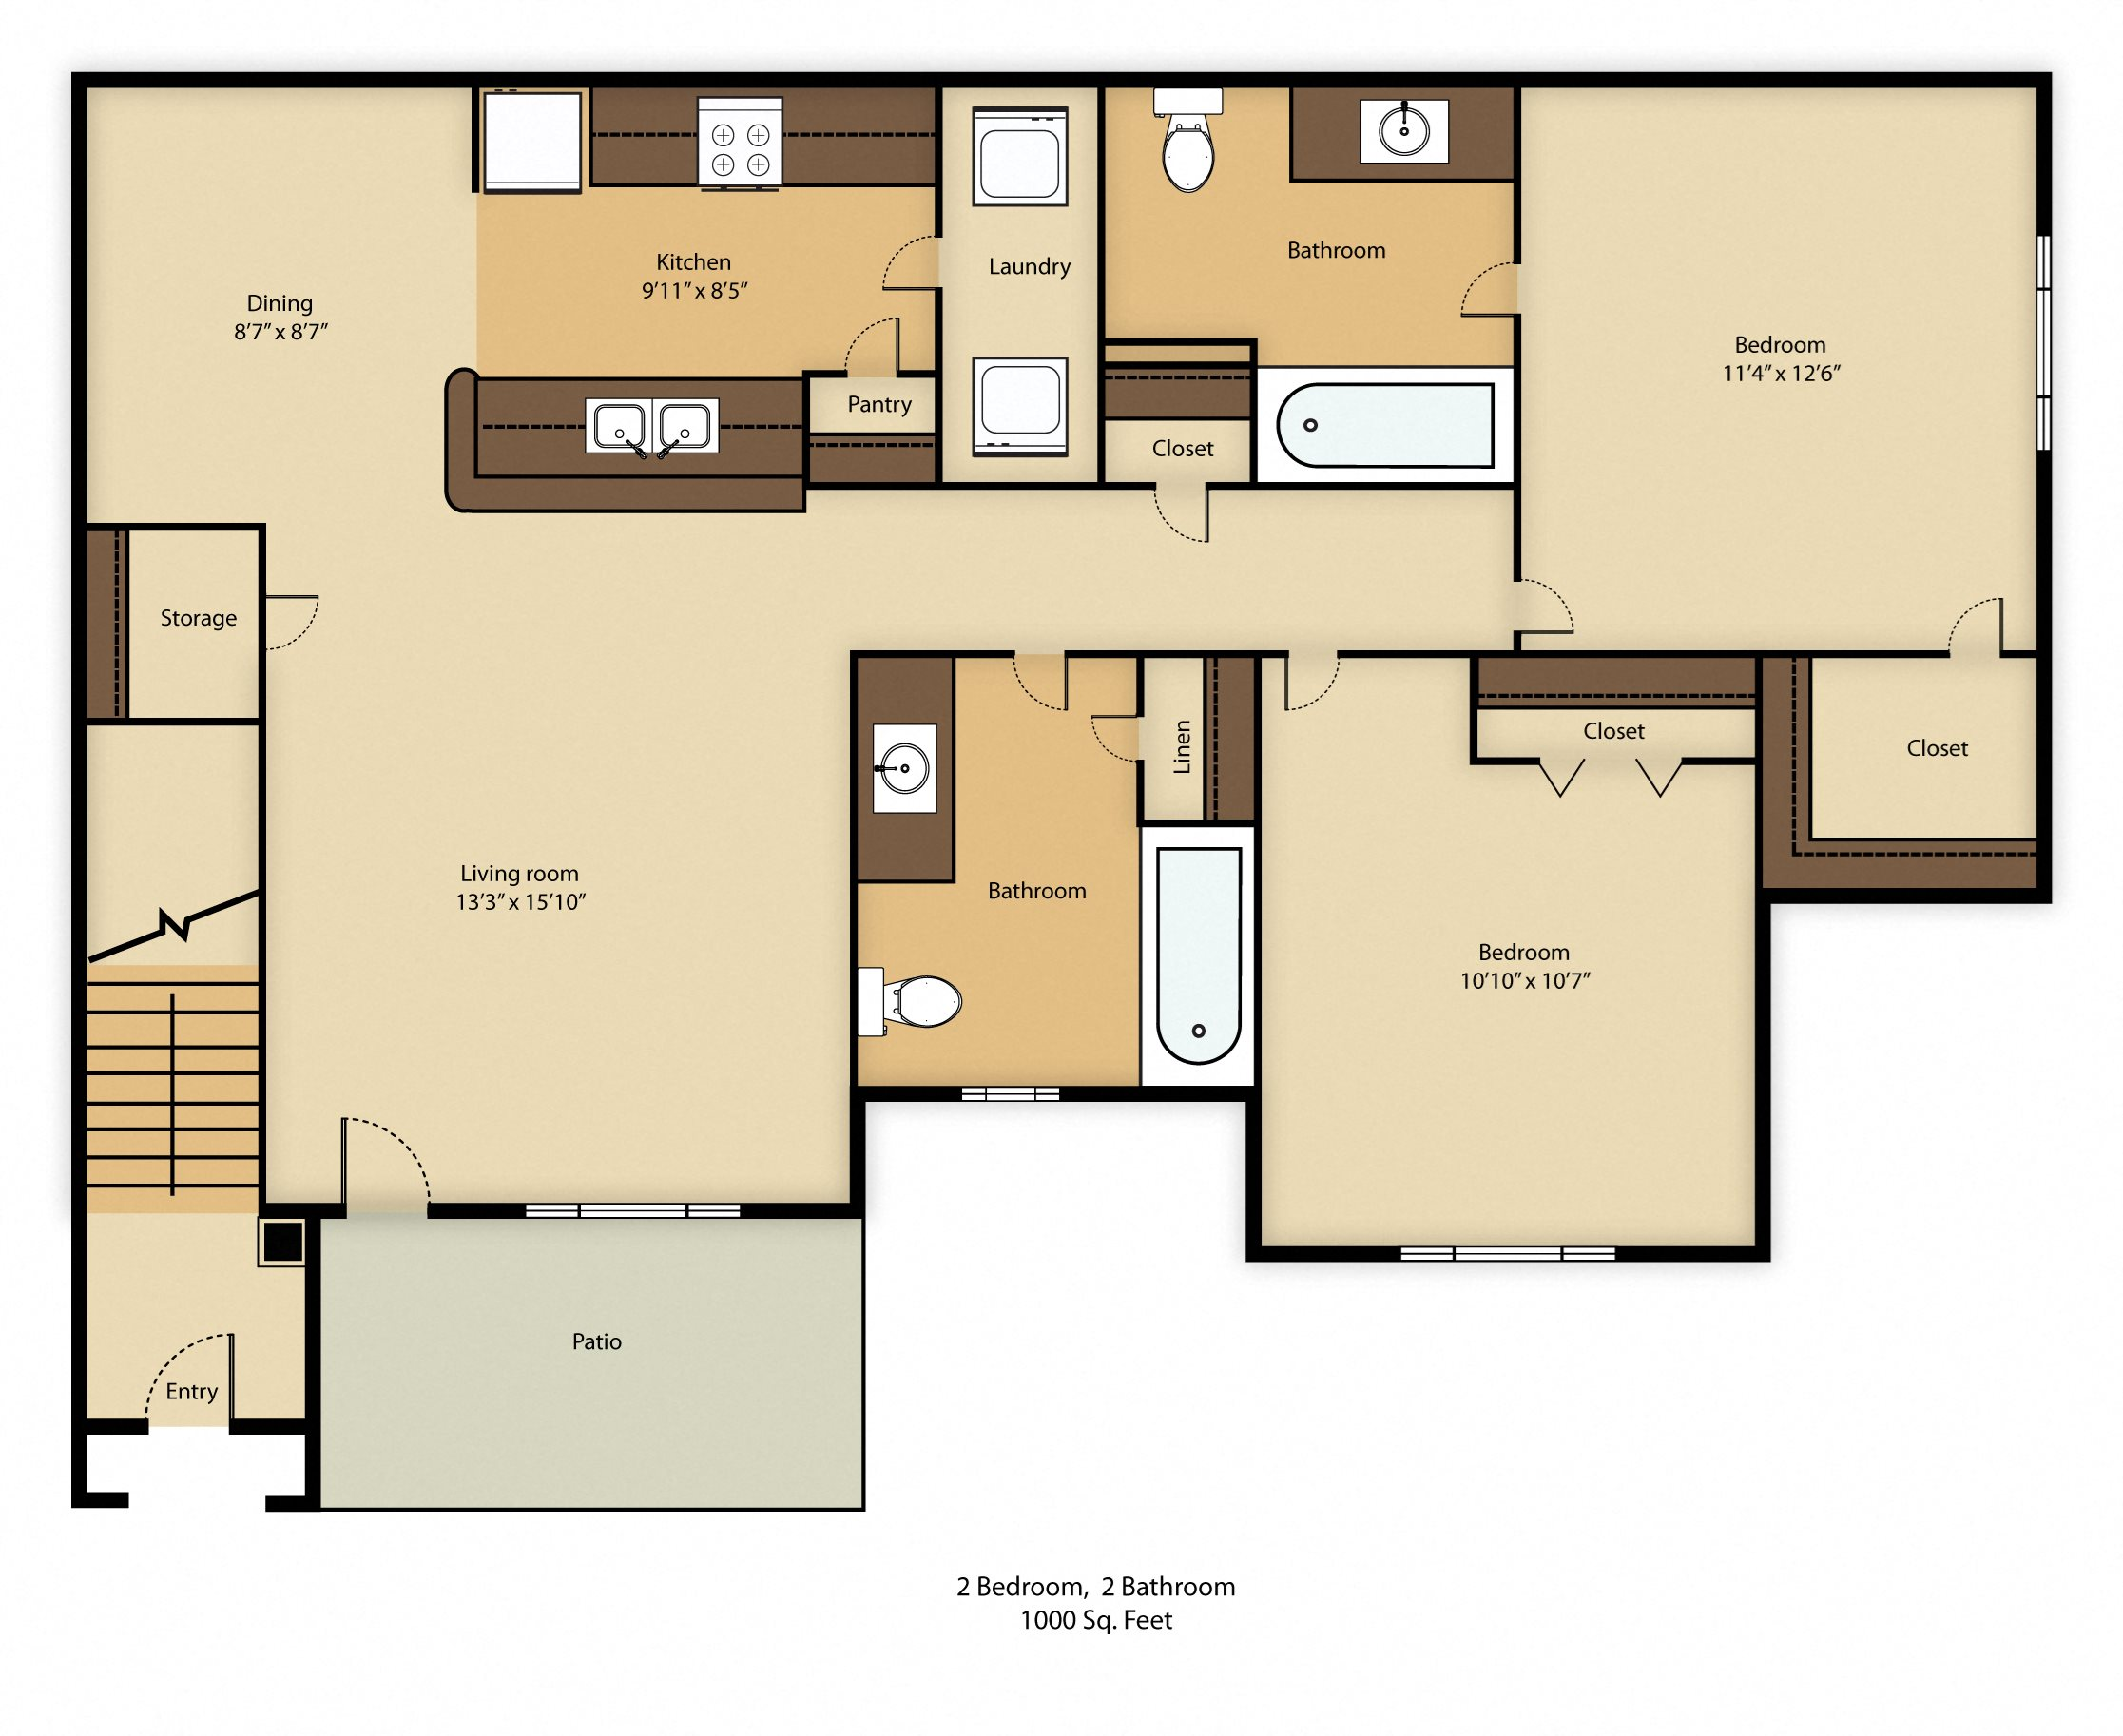 apartments bedroom lux space tx dallas locators lobby wycliff properties at apartment in